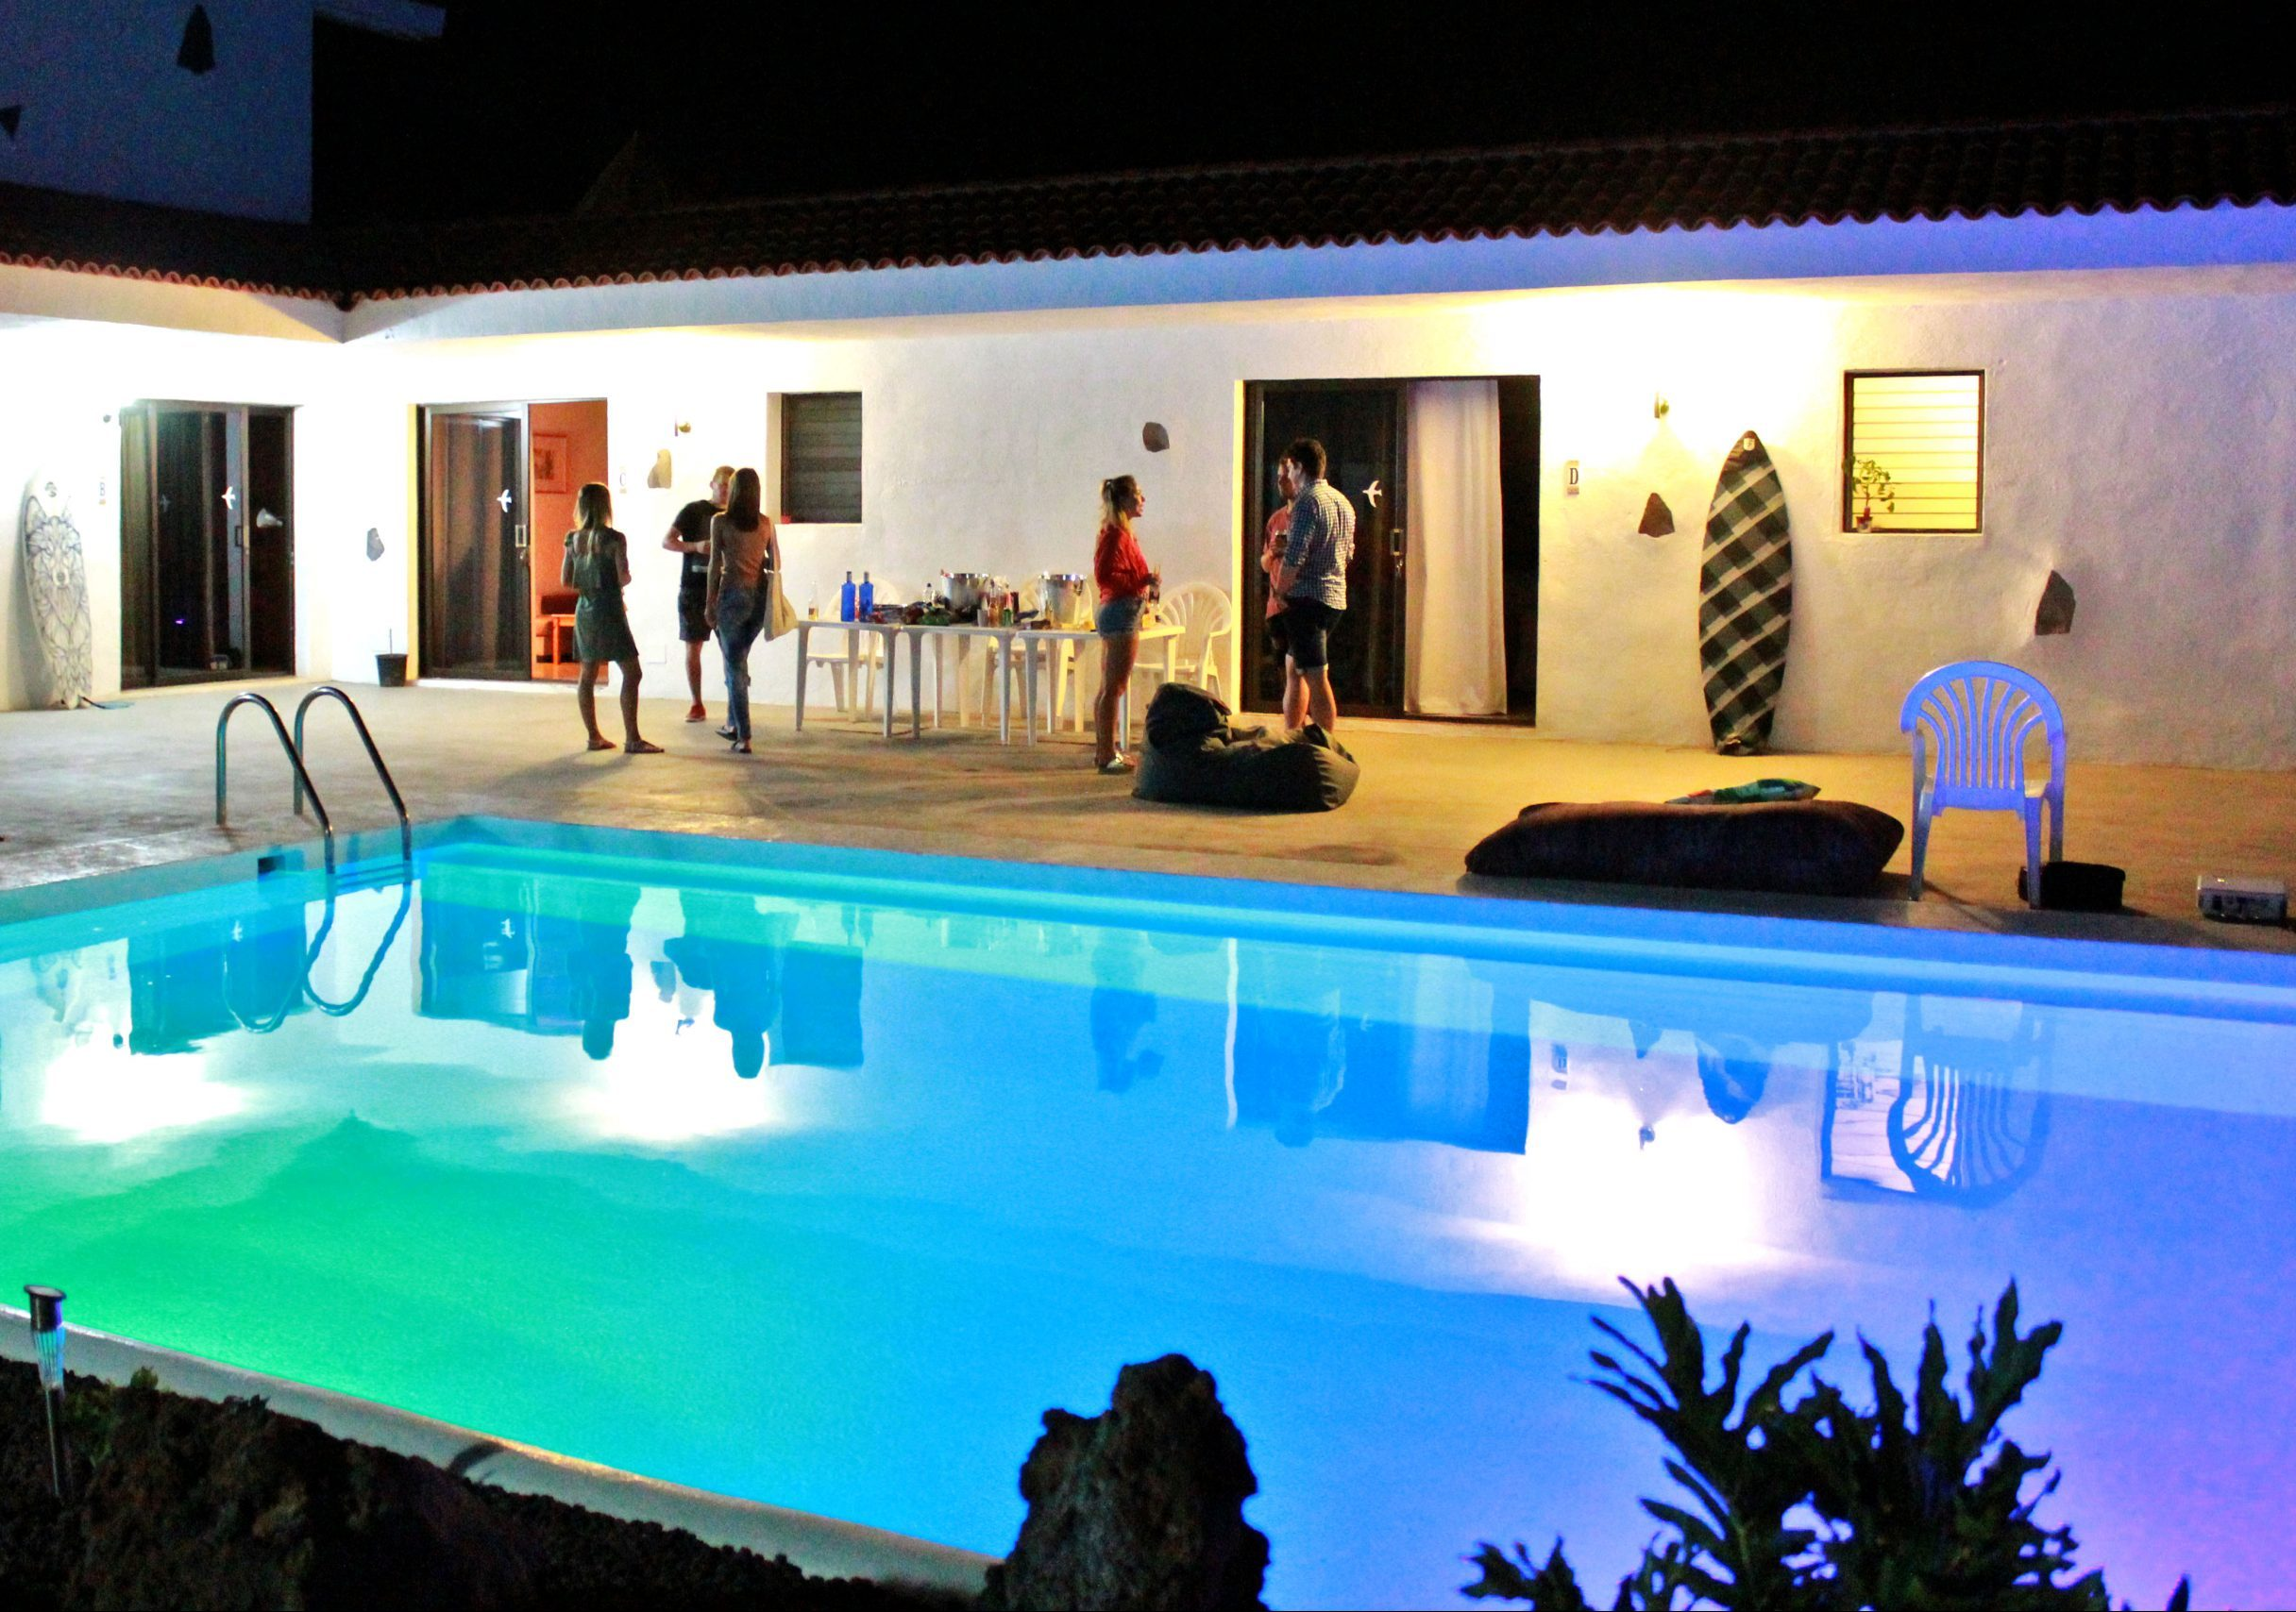 pool party villa tenerife coworking adventure nomads camp